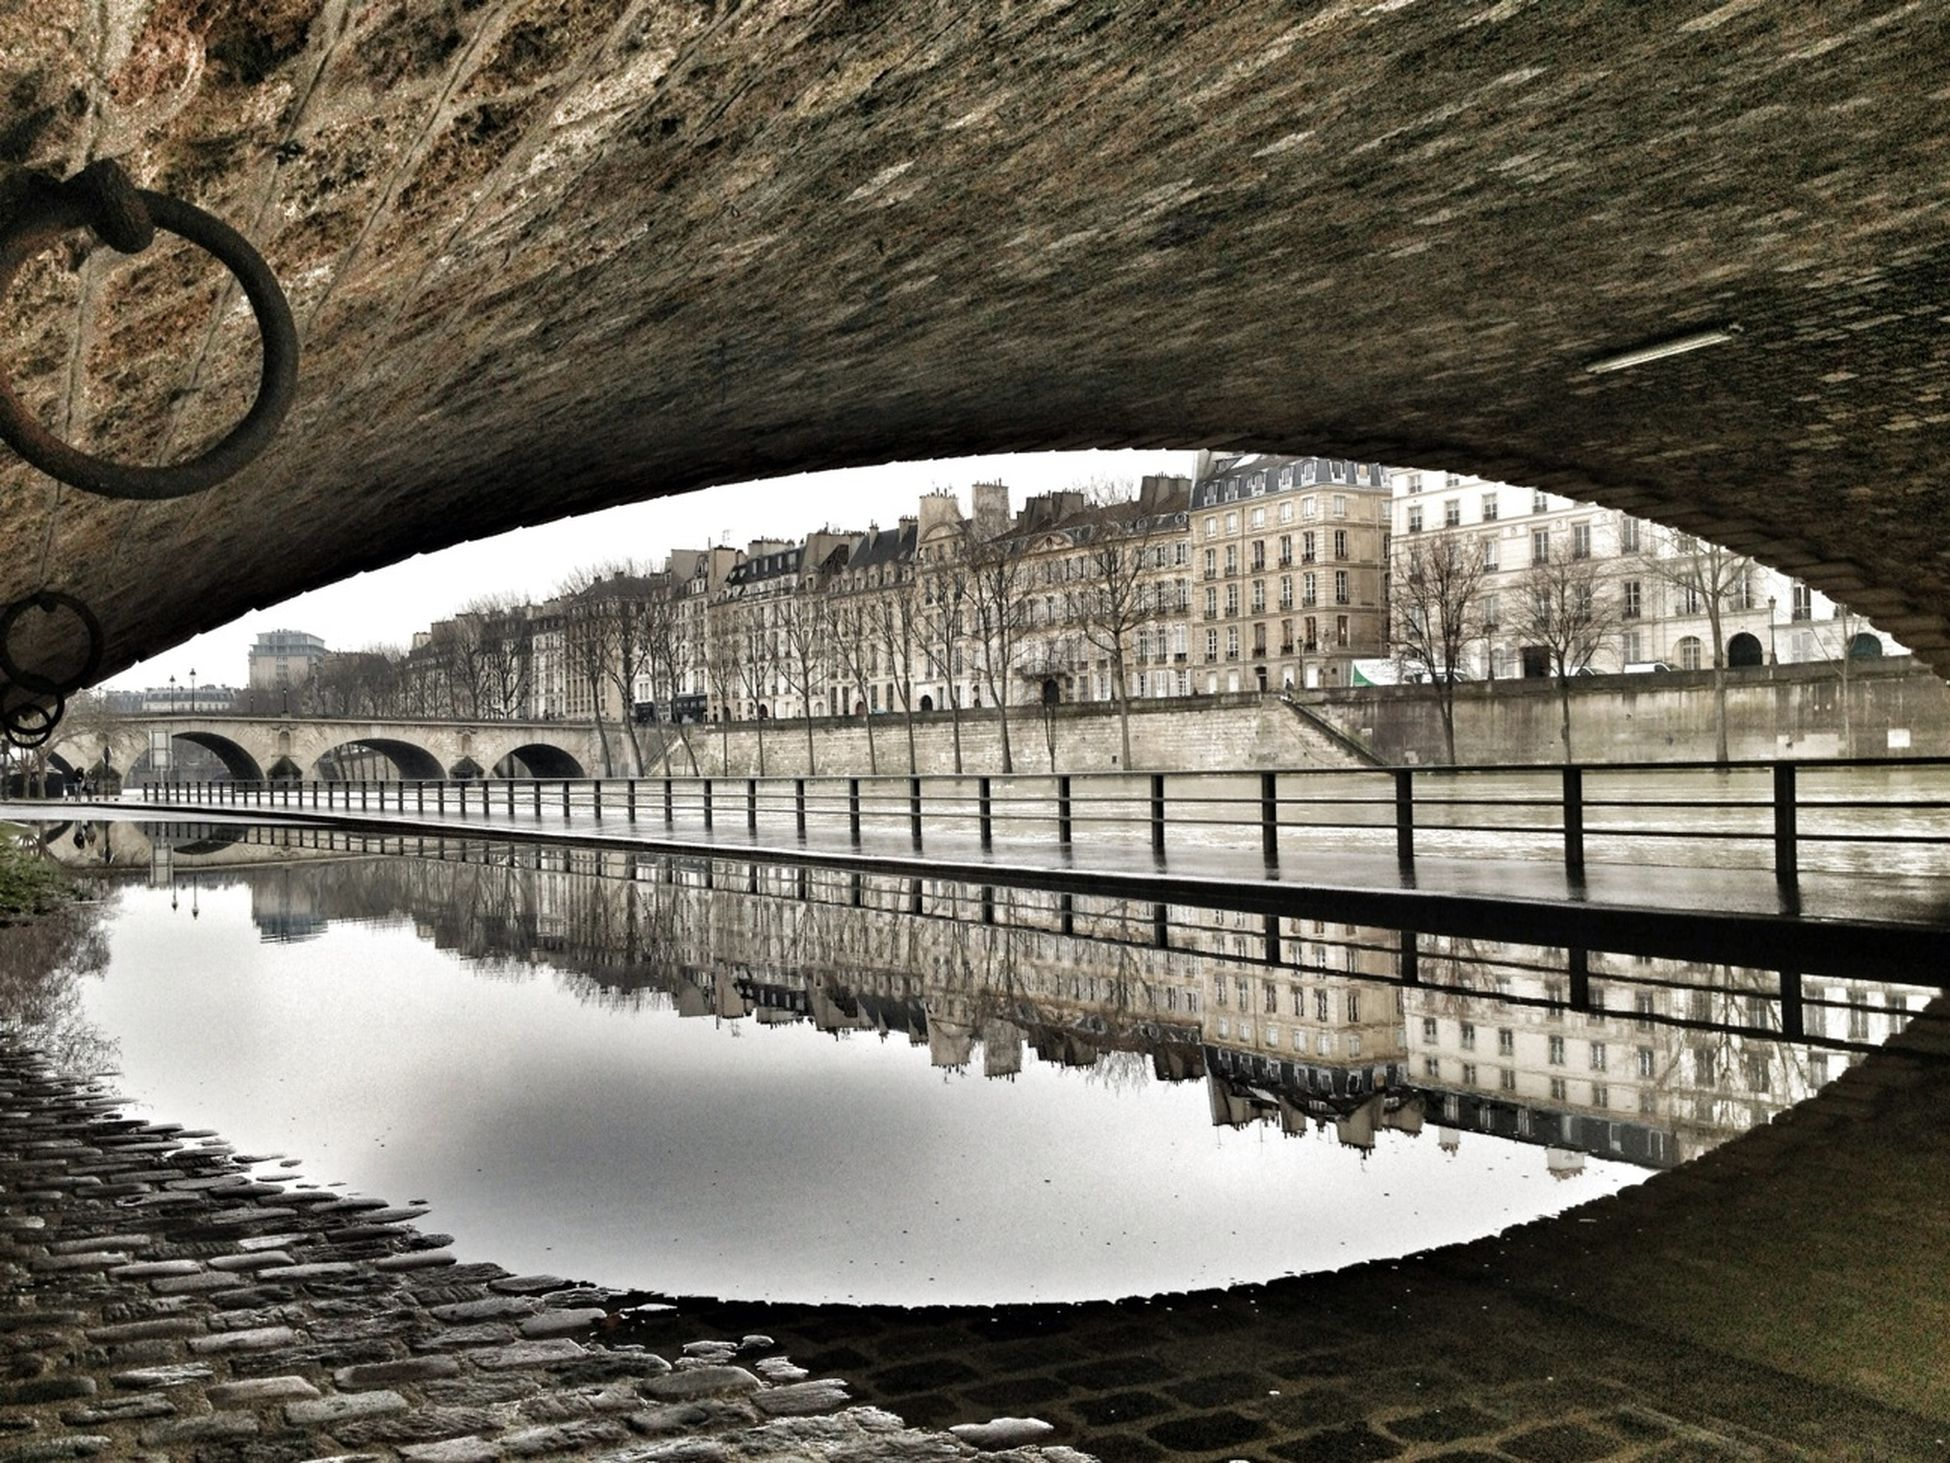 architecture, built structure, arch, building exterior, connection, arch bridge, bridge - man made structure, river, bridge, reflection, city, arched, water, transportation, engineering, day, outdoors, archway, sky, travel destinations